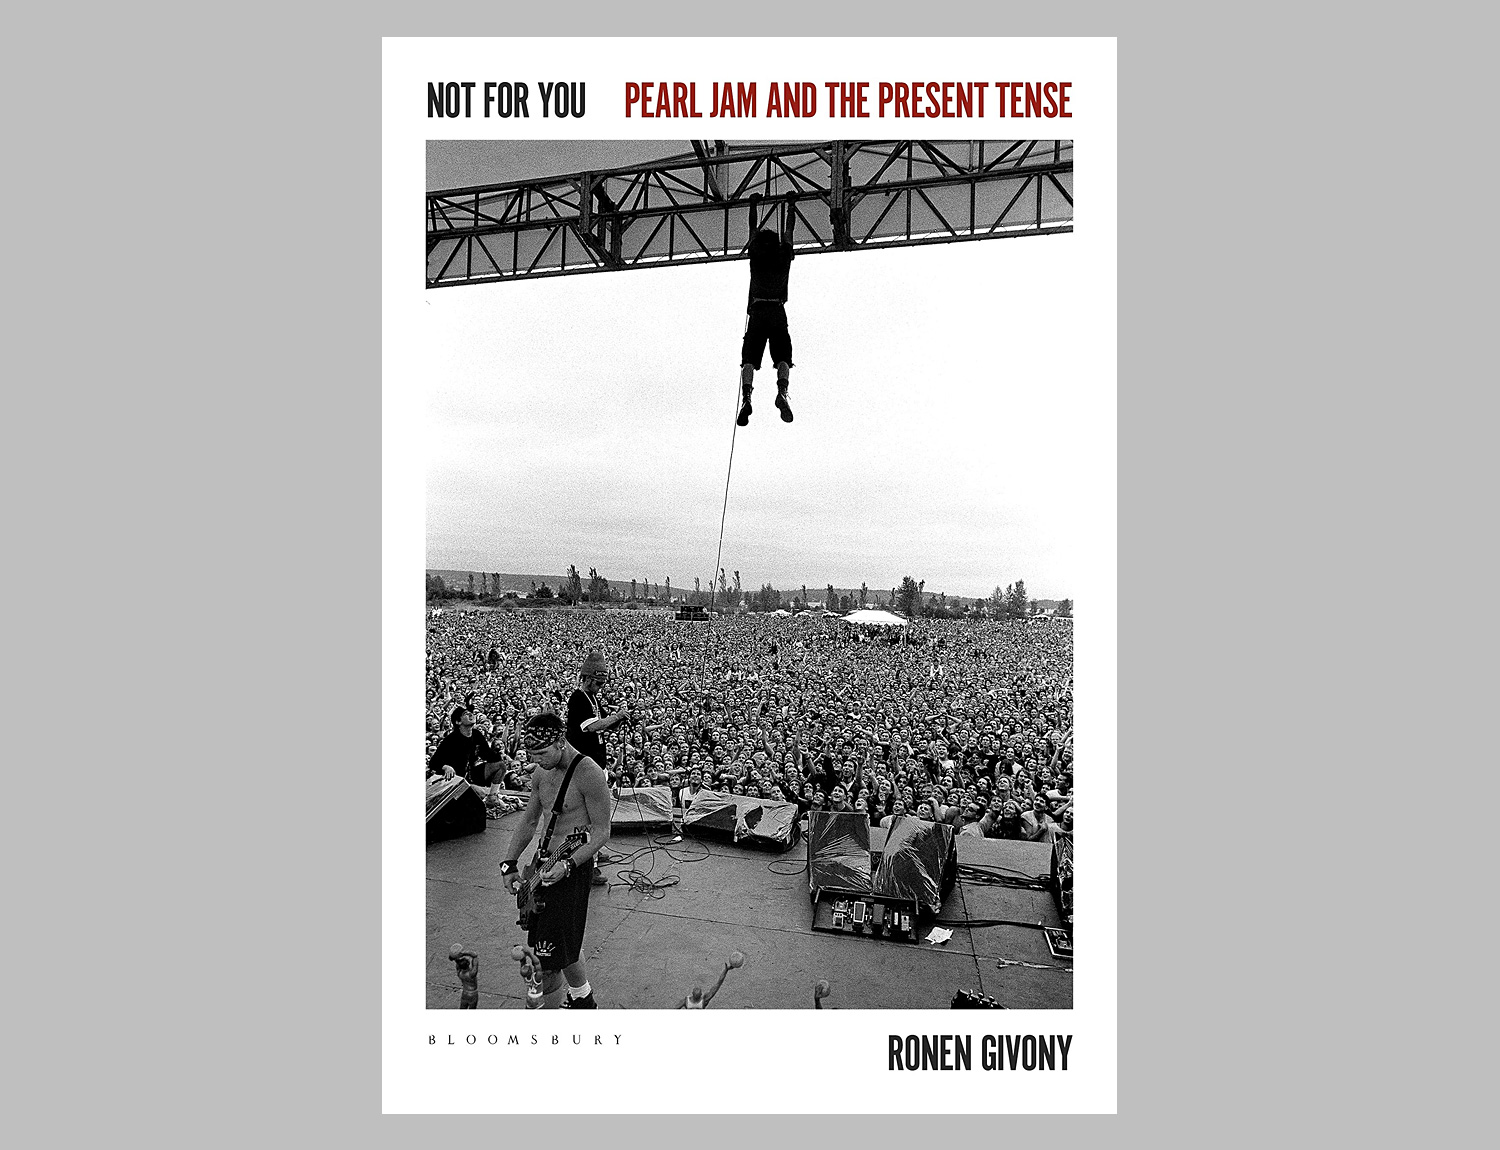 Not for You: Pearl Jam and the Present Tense at werd.com